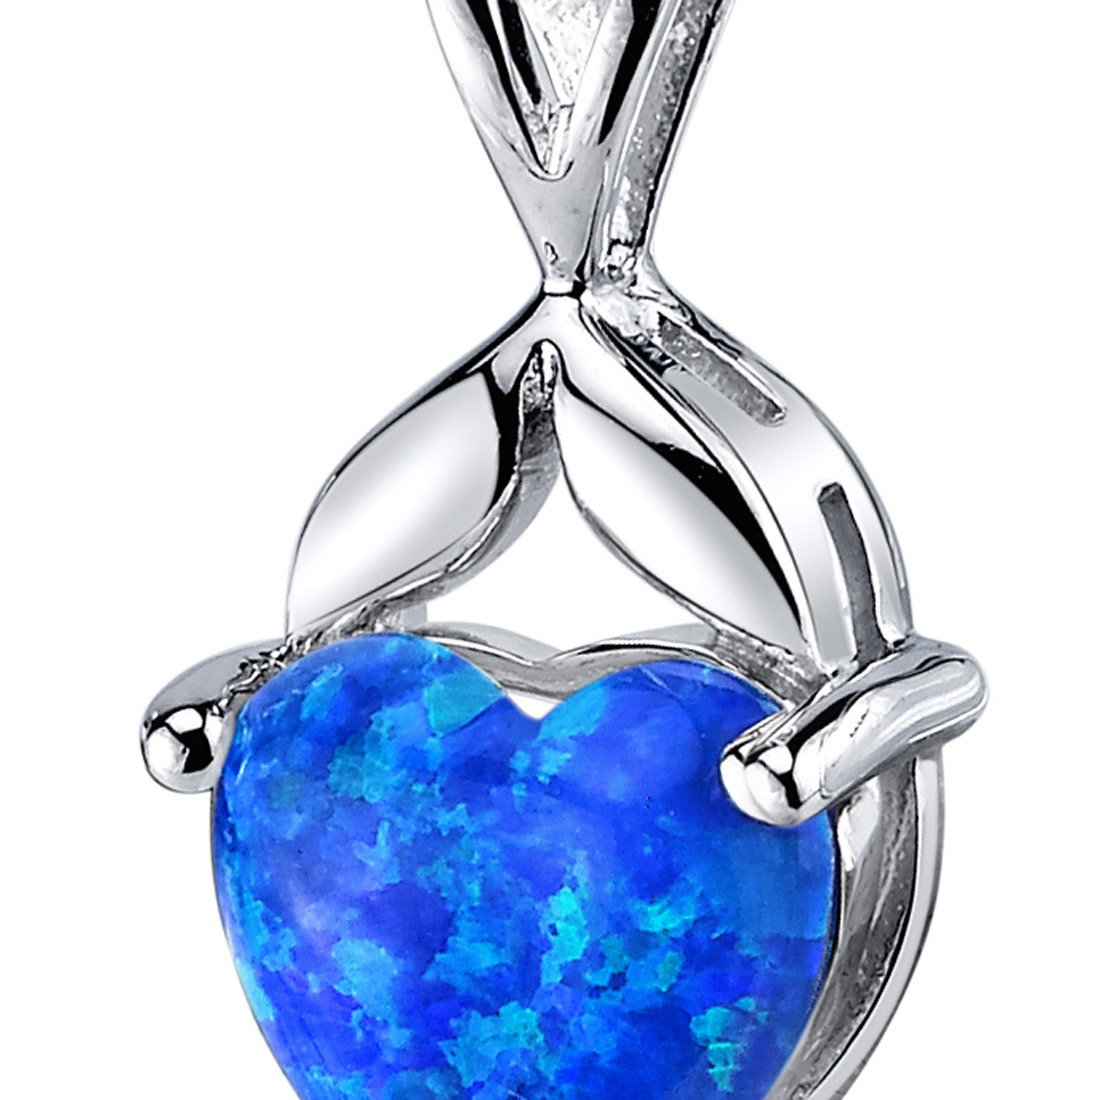 Created Blue-Green Opal Pendant Necklace Sterling Silver Heart Shape 2.50 Carats